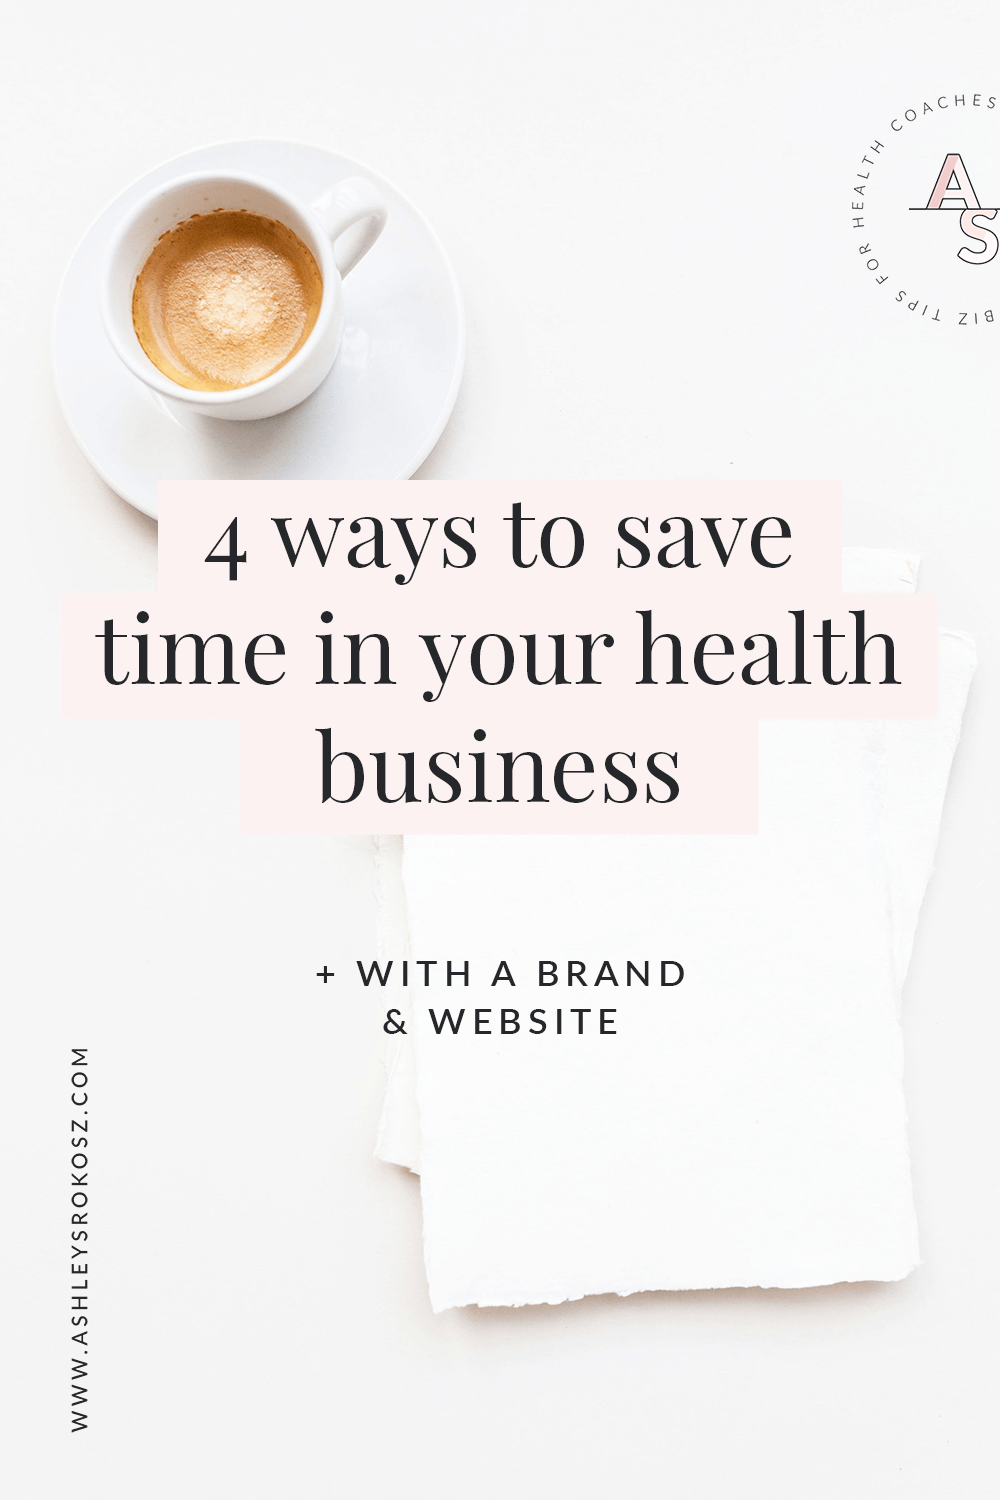 The problem is that you've got to market your business to get new clients, but you need the time to work with those clients to make an income. How can you possibly balance it all? #Blogging #BloggingHacks #SocialMedia #HowToBlog #OnlineBusiness